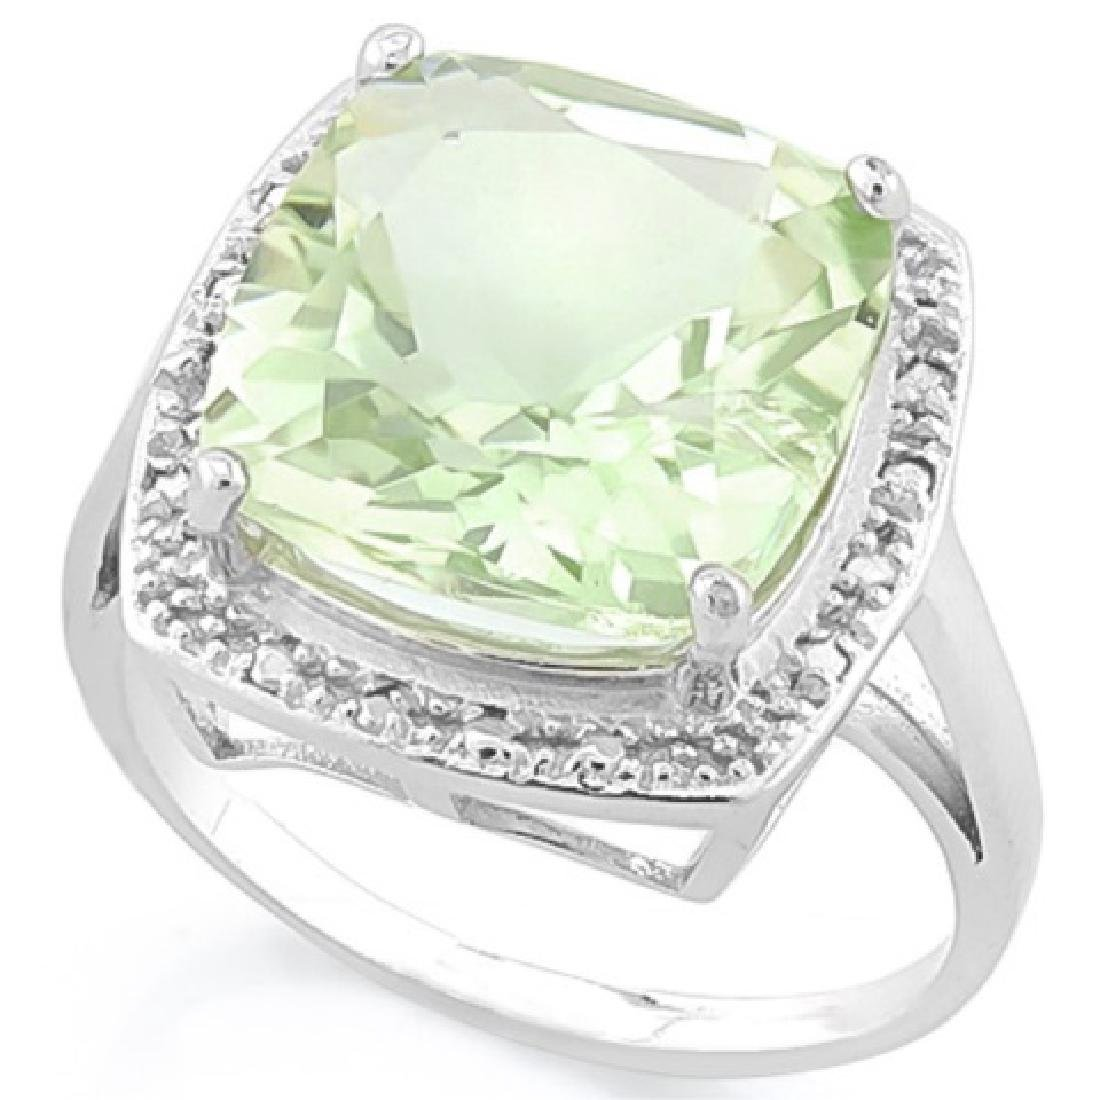 ELEGANT 5CT FACETED GREEN AMETHYST CUSHION CUT RIG